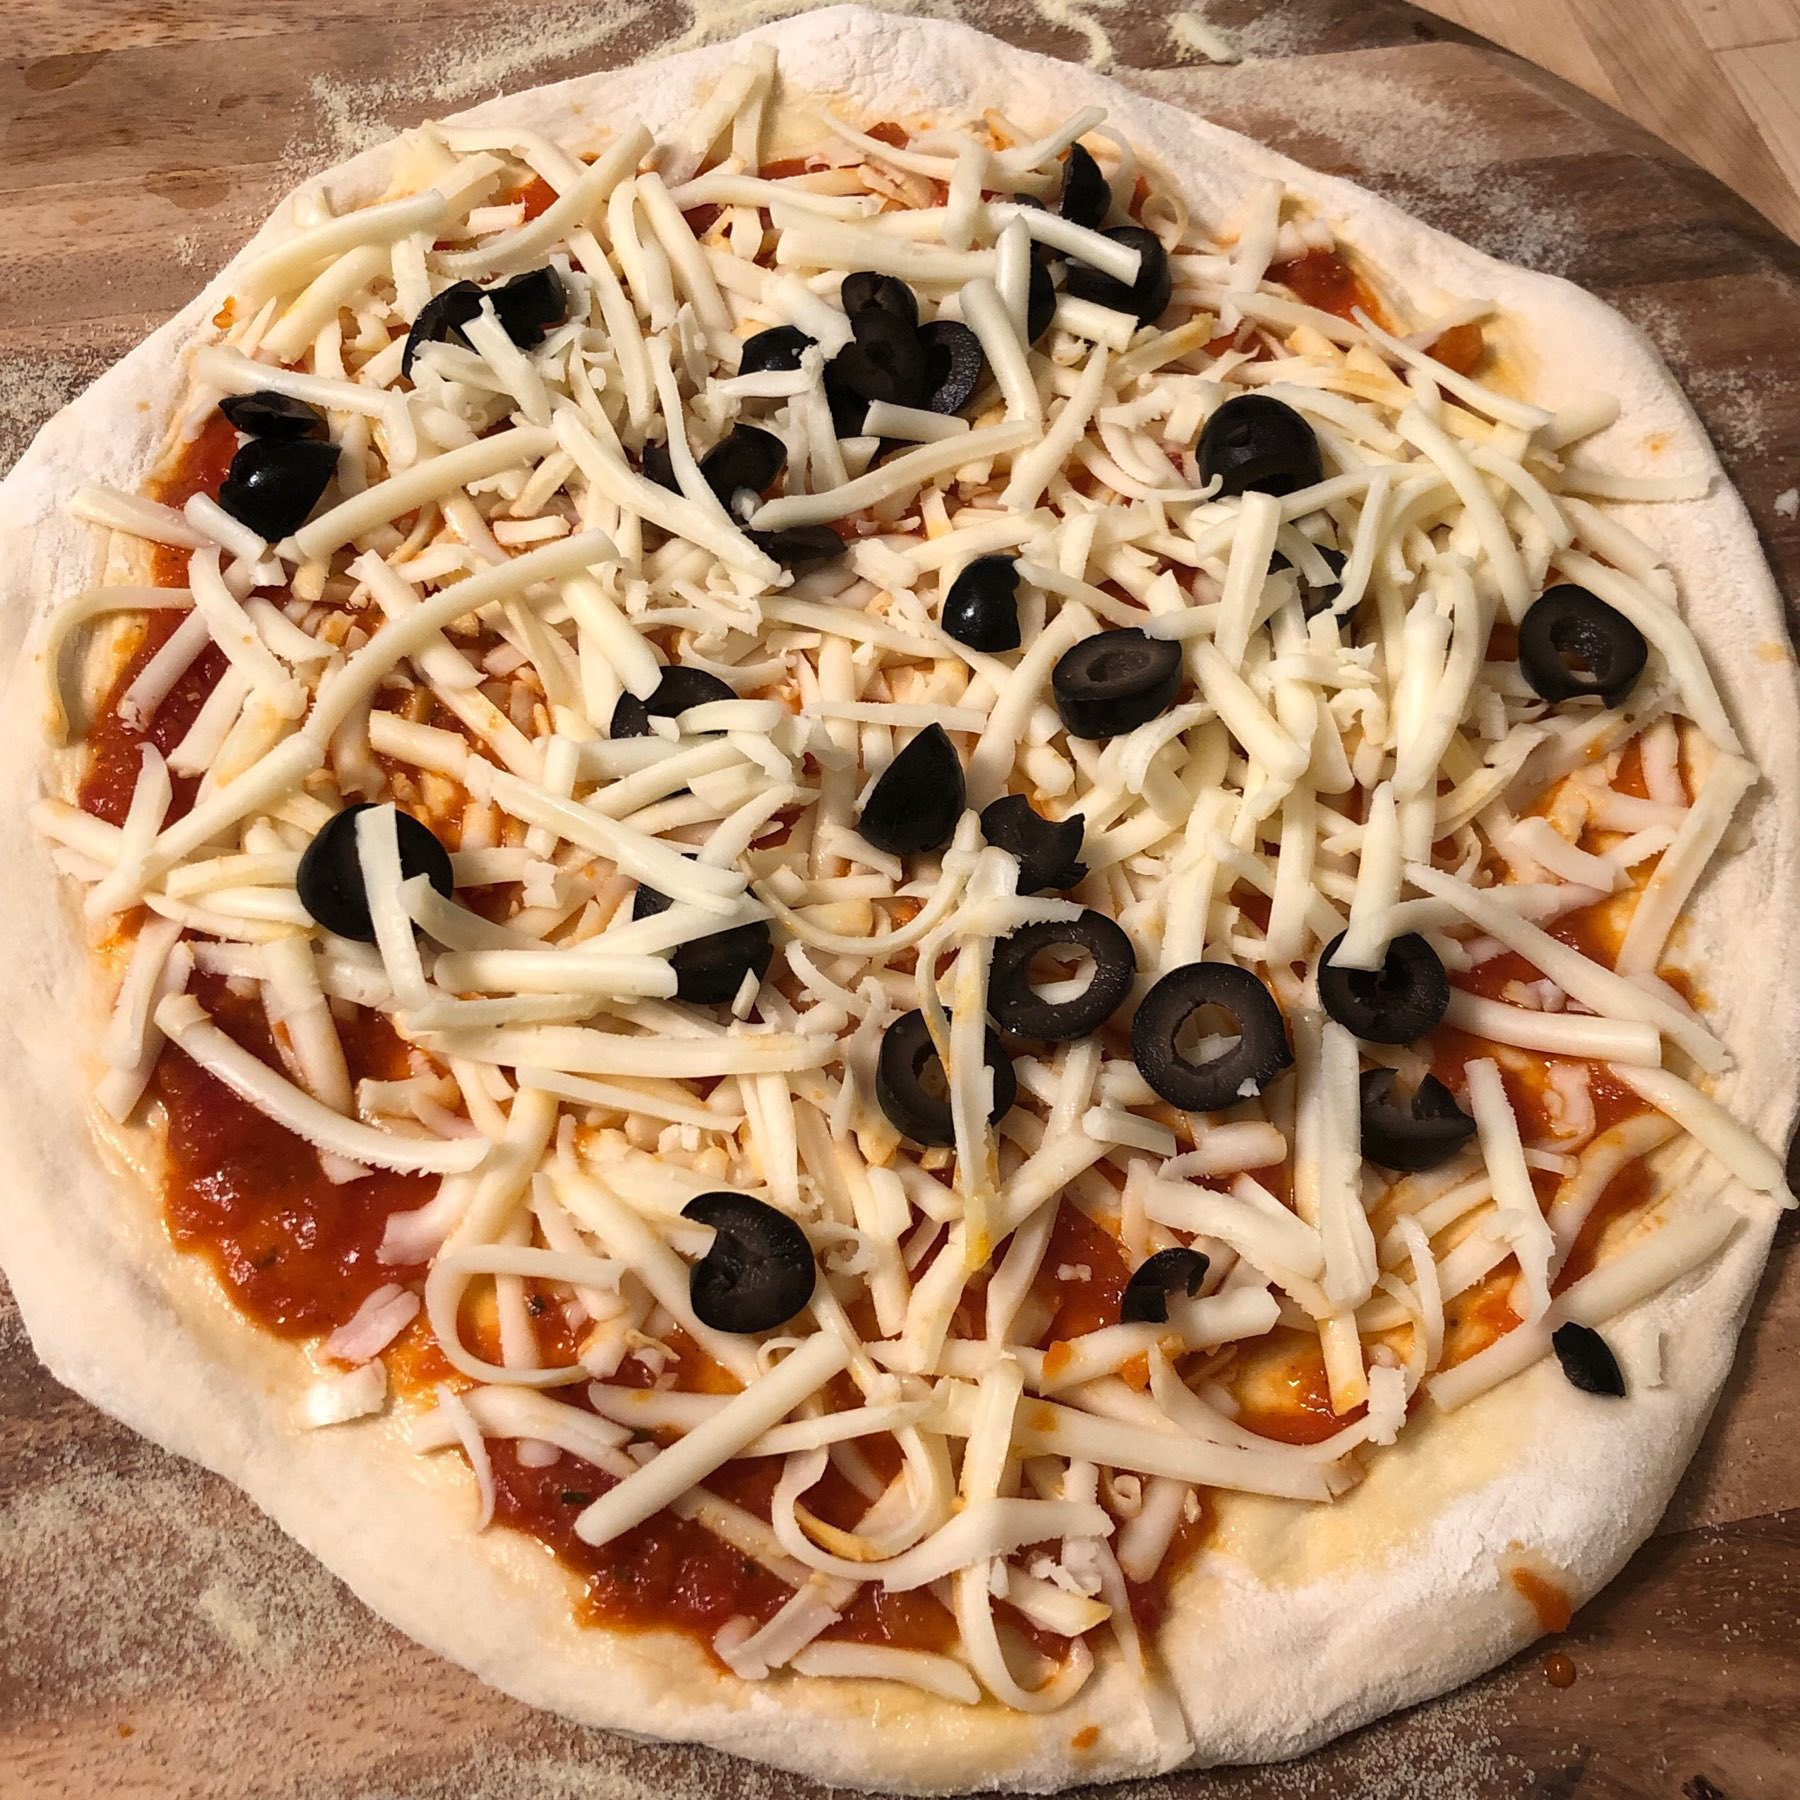 Raw pizza with grated mozzarella and black olives.